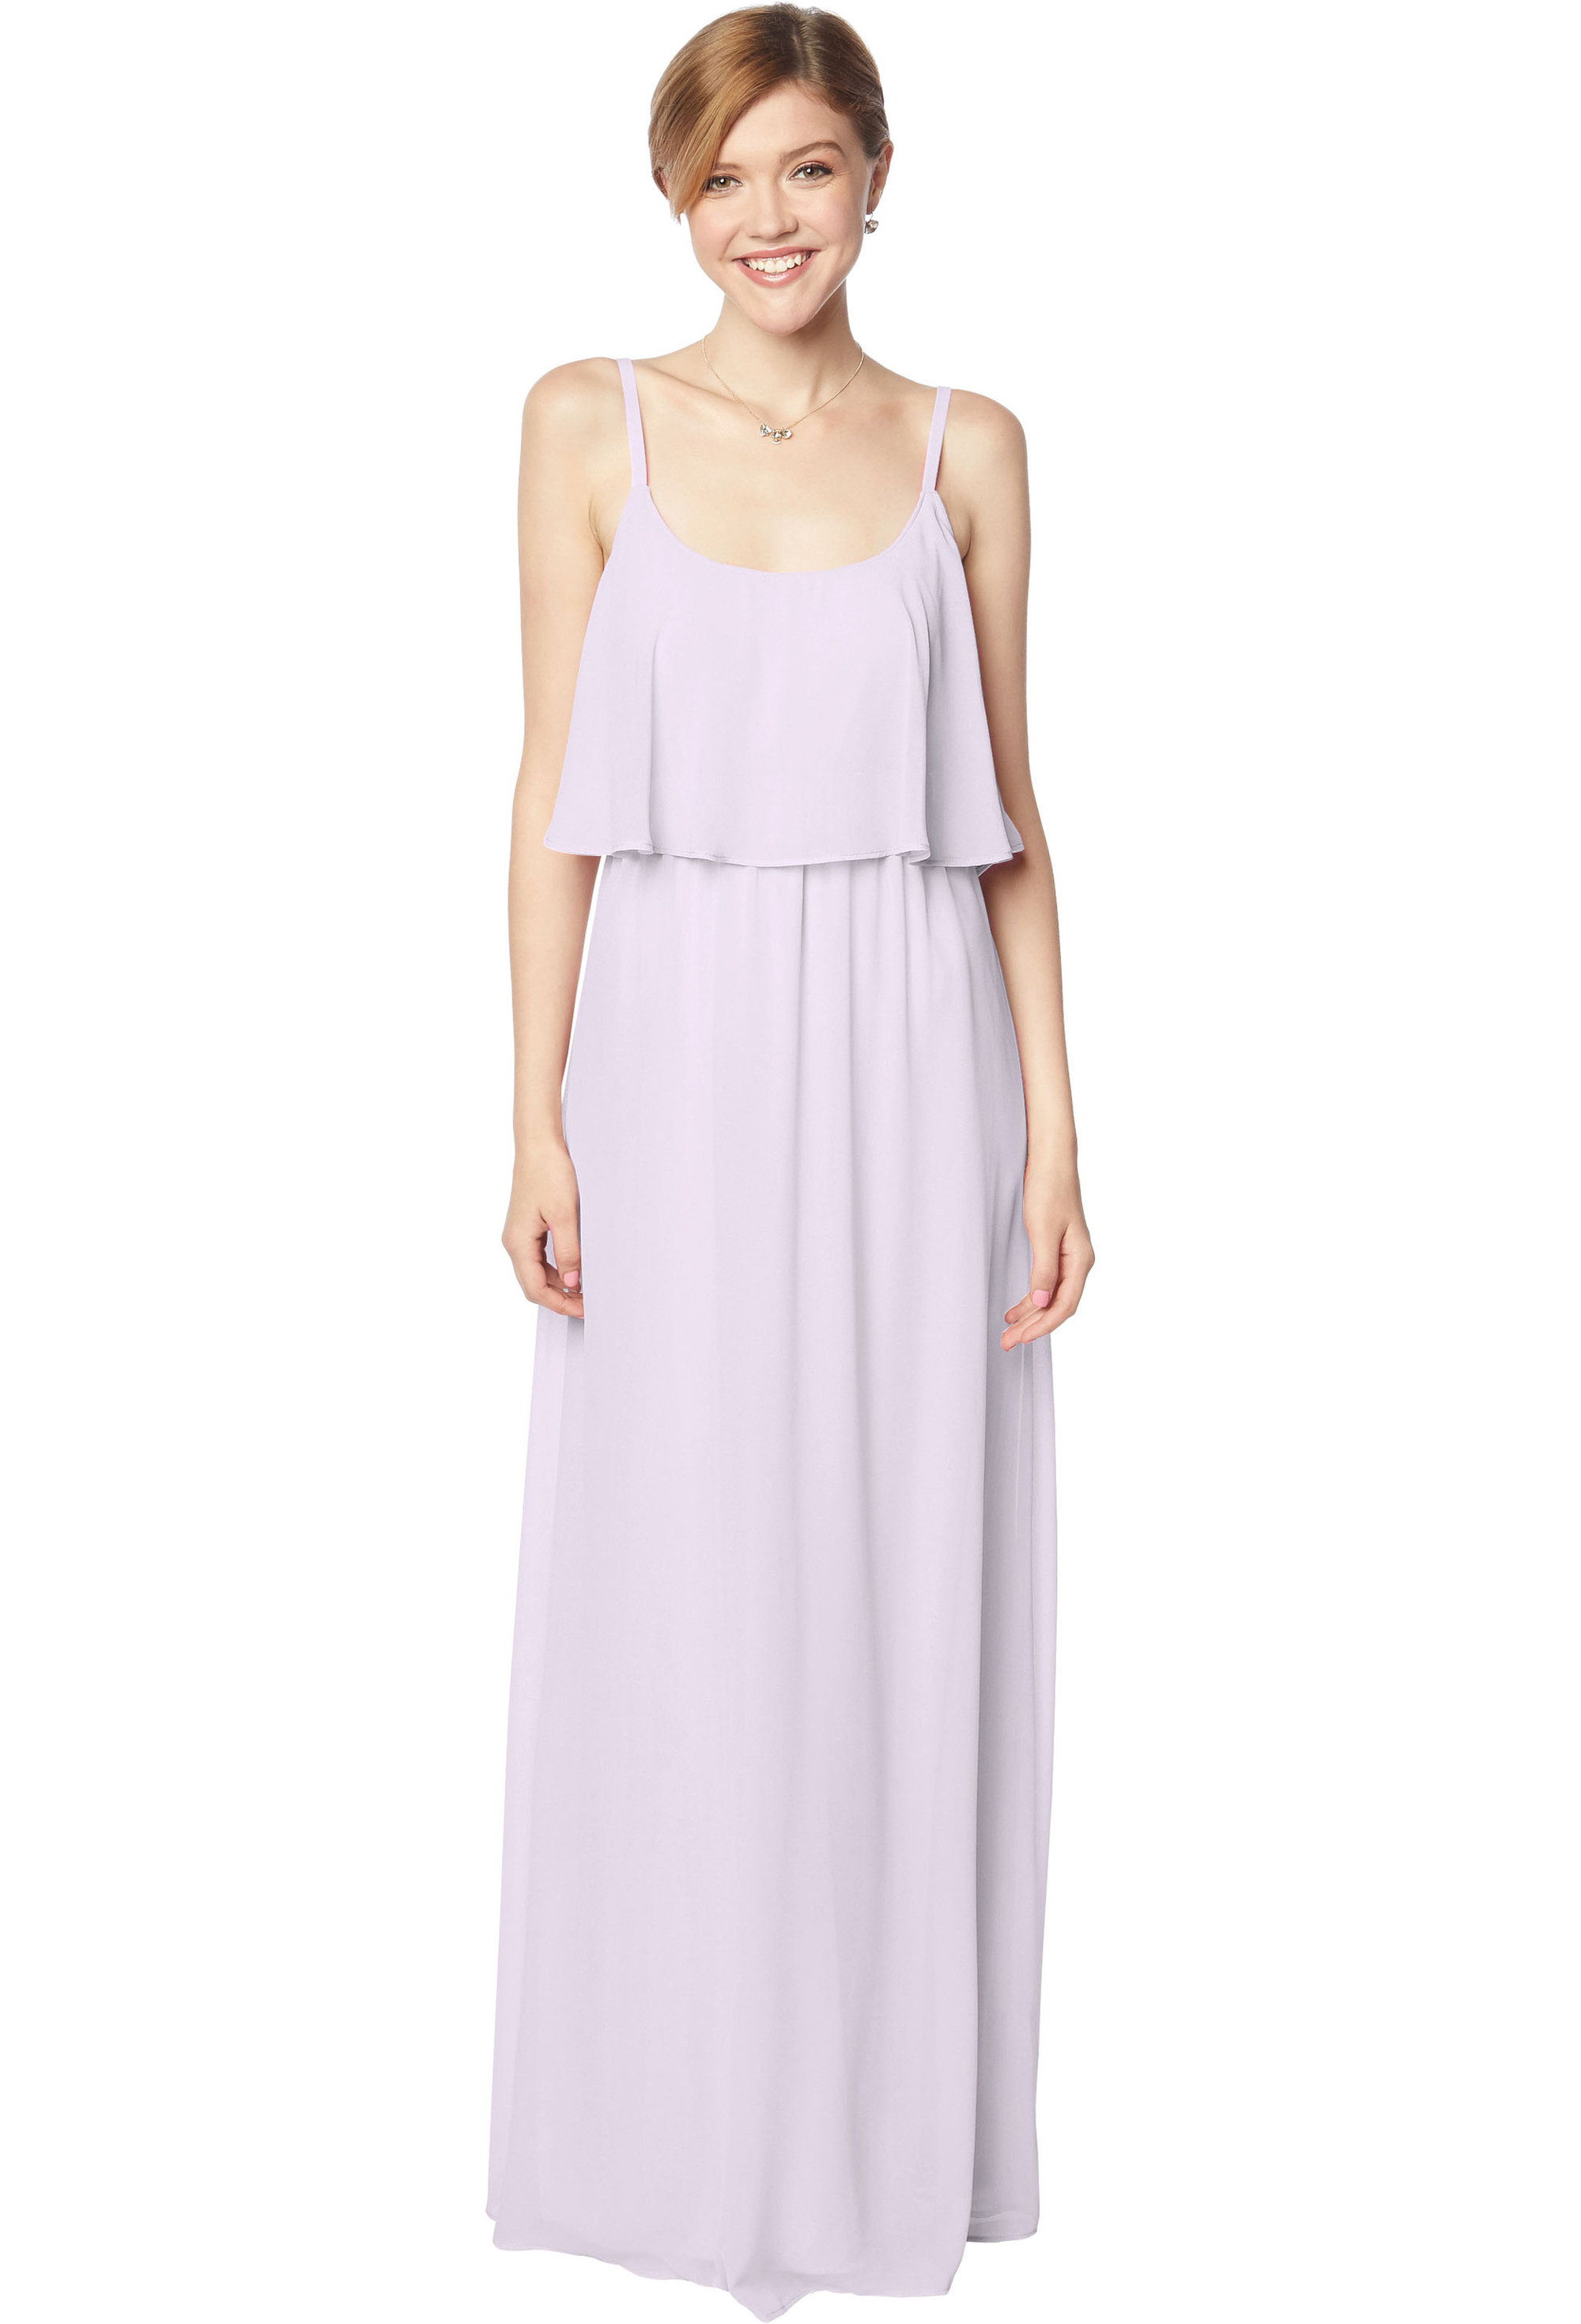 Bill Levkoff VIOLET Chiffon Scoop A-line gown, $170.00 Front